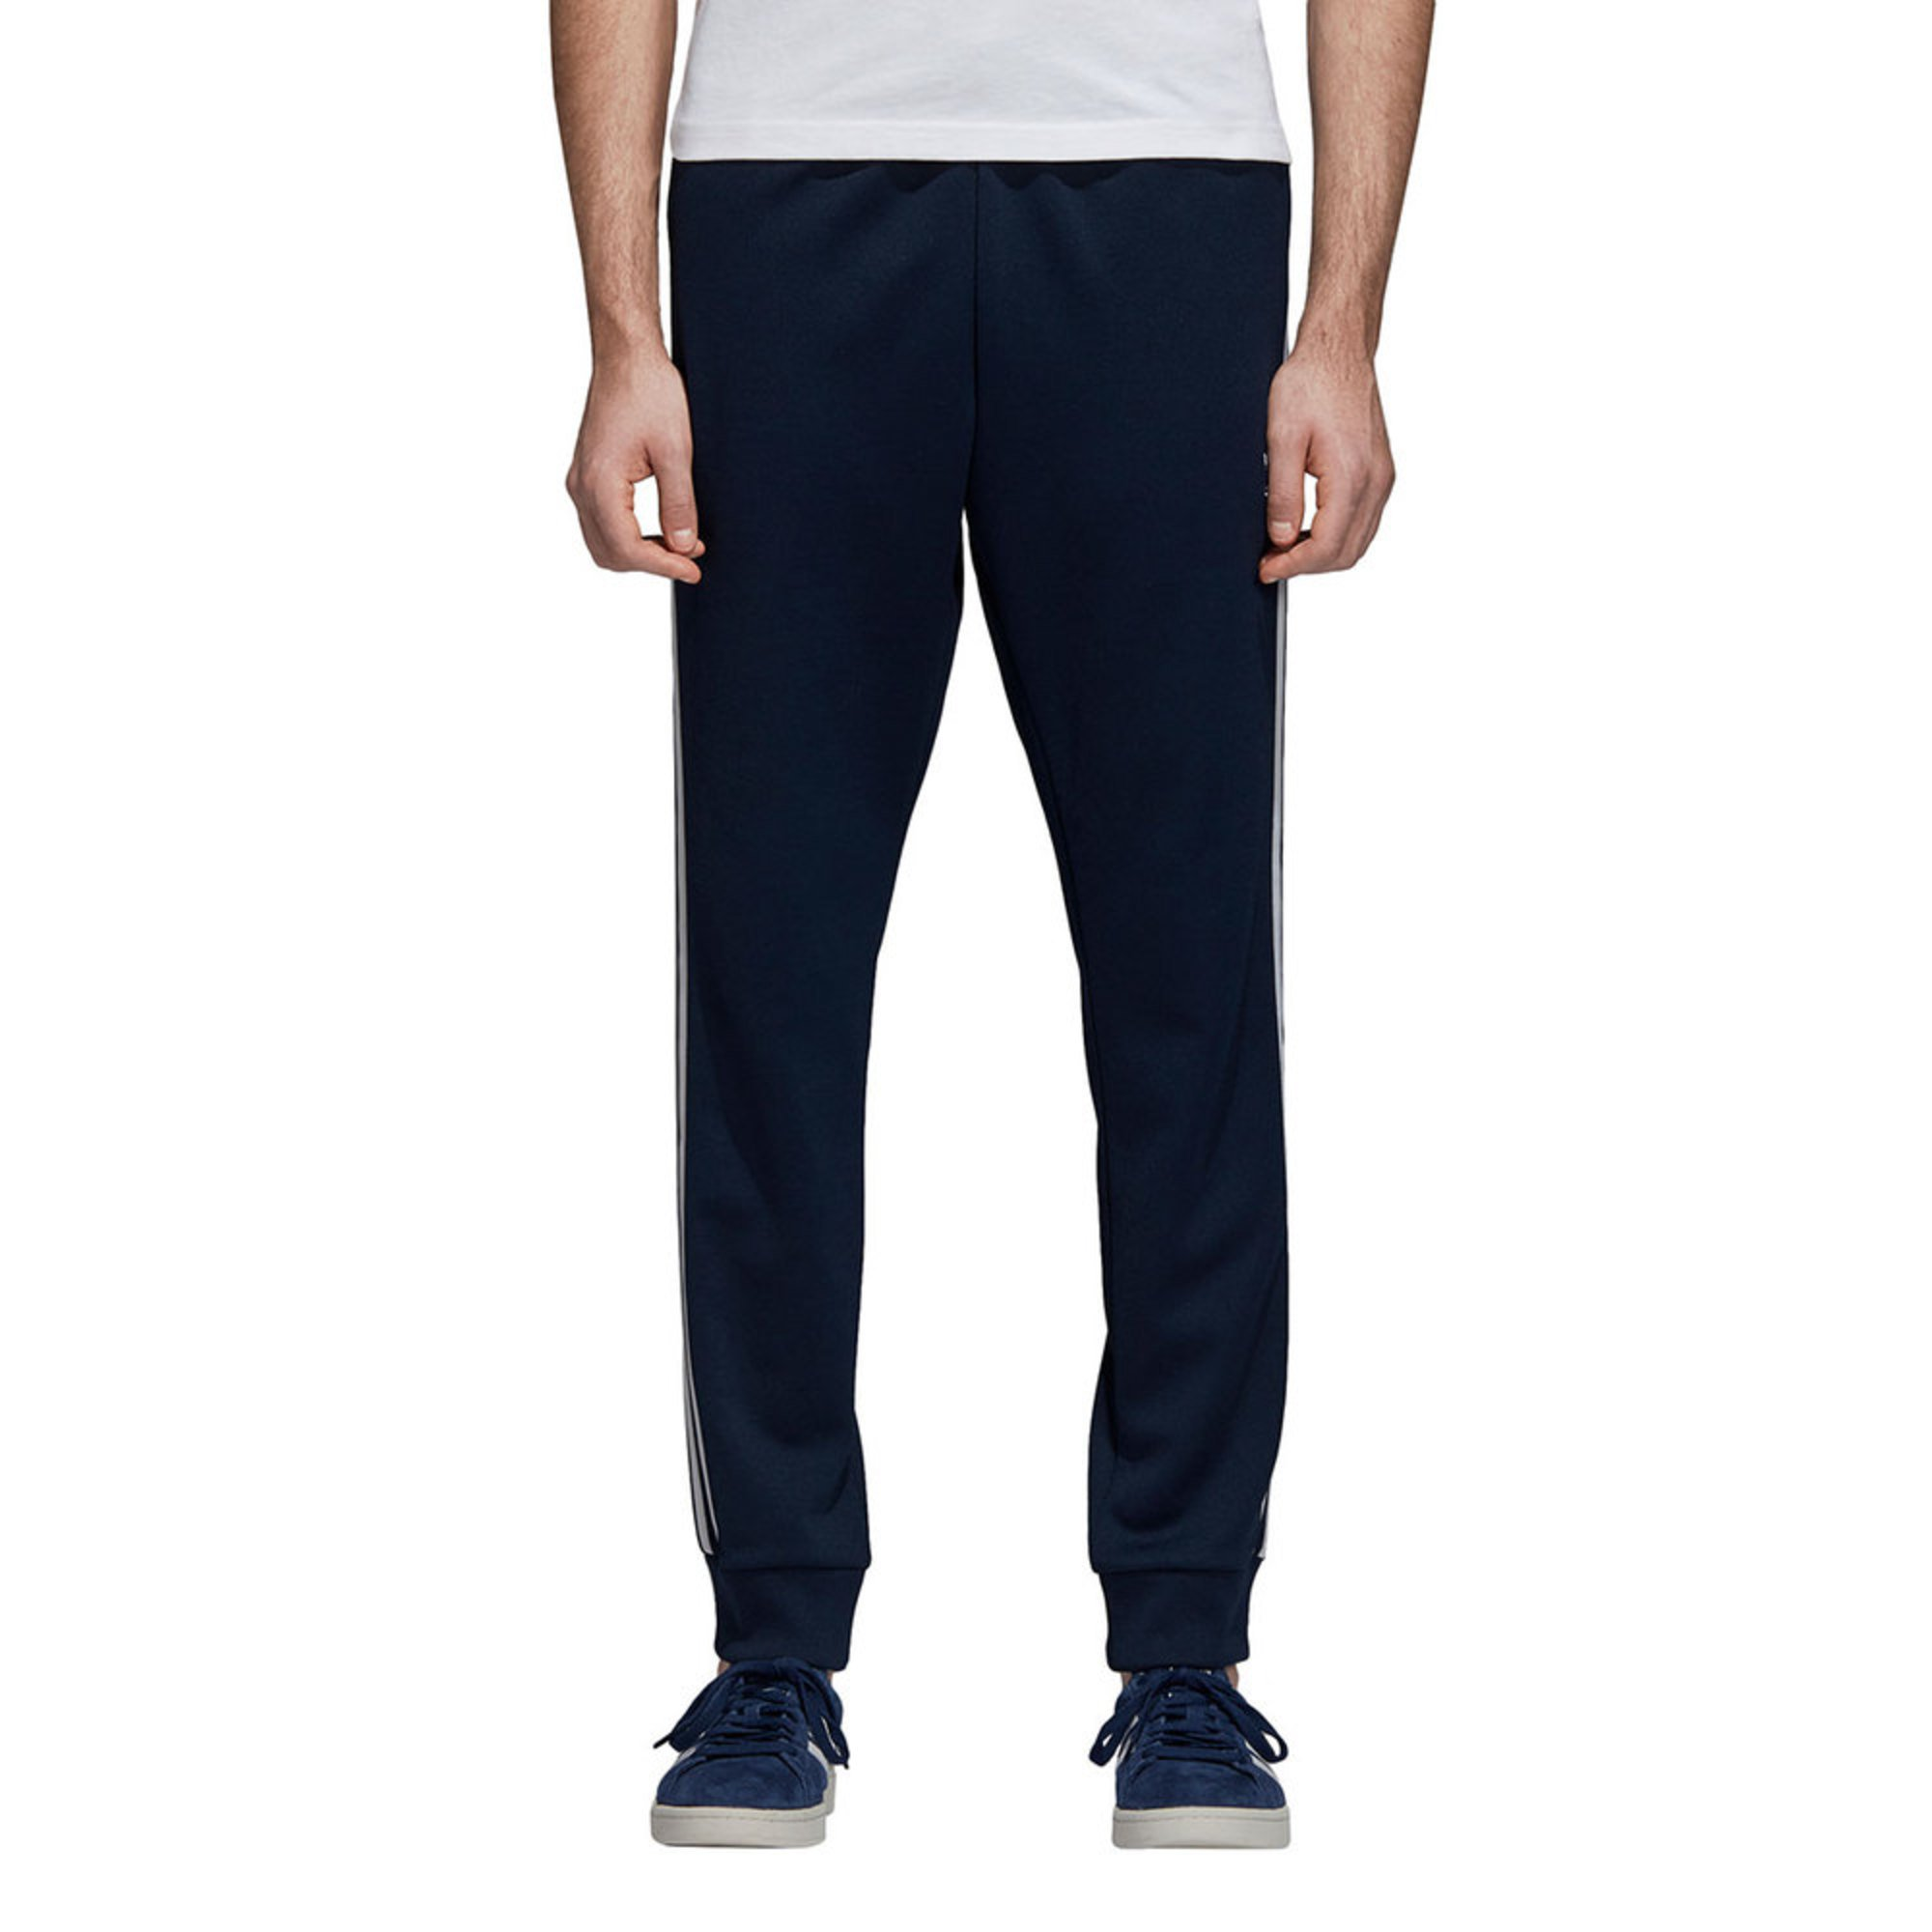 f489be88e4e4 adidas. adidas Men s Originals Superstar Track Pants